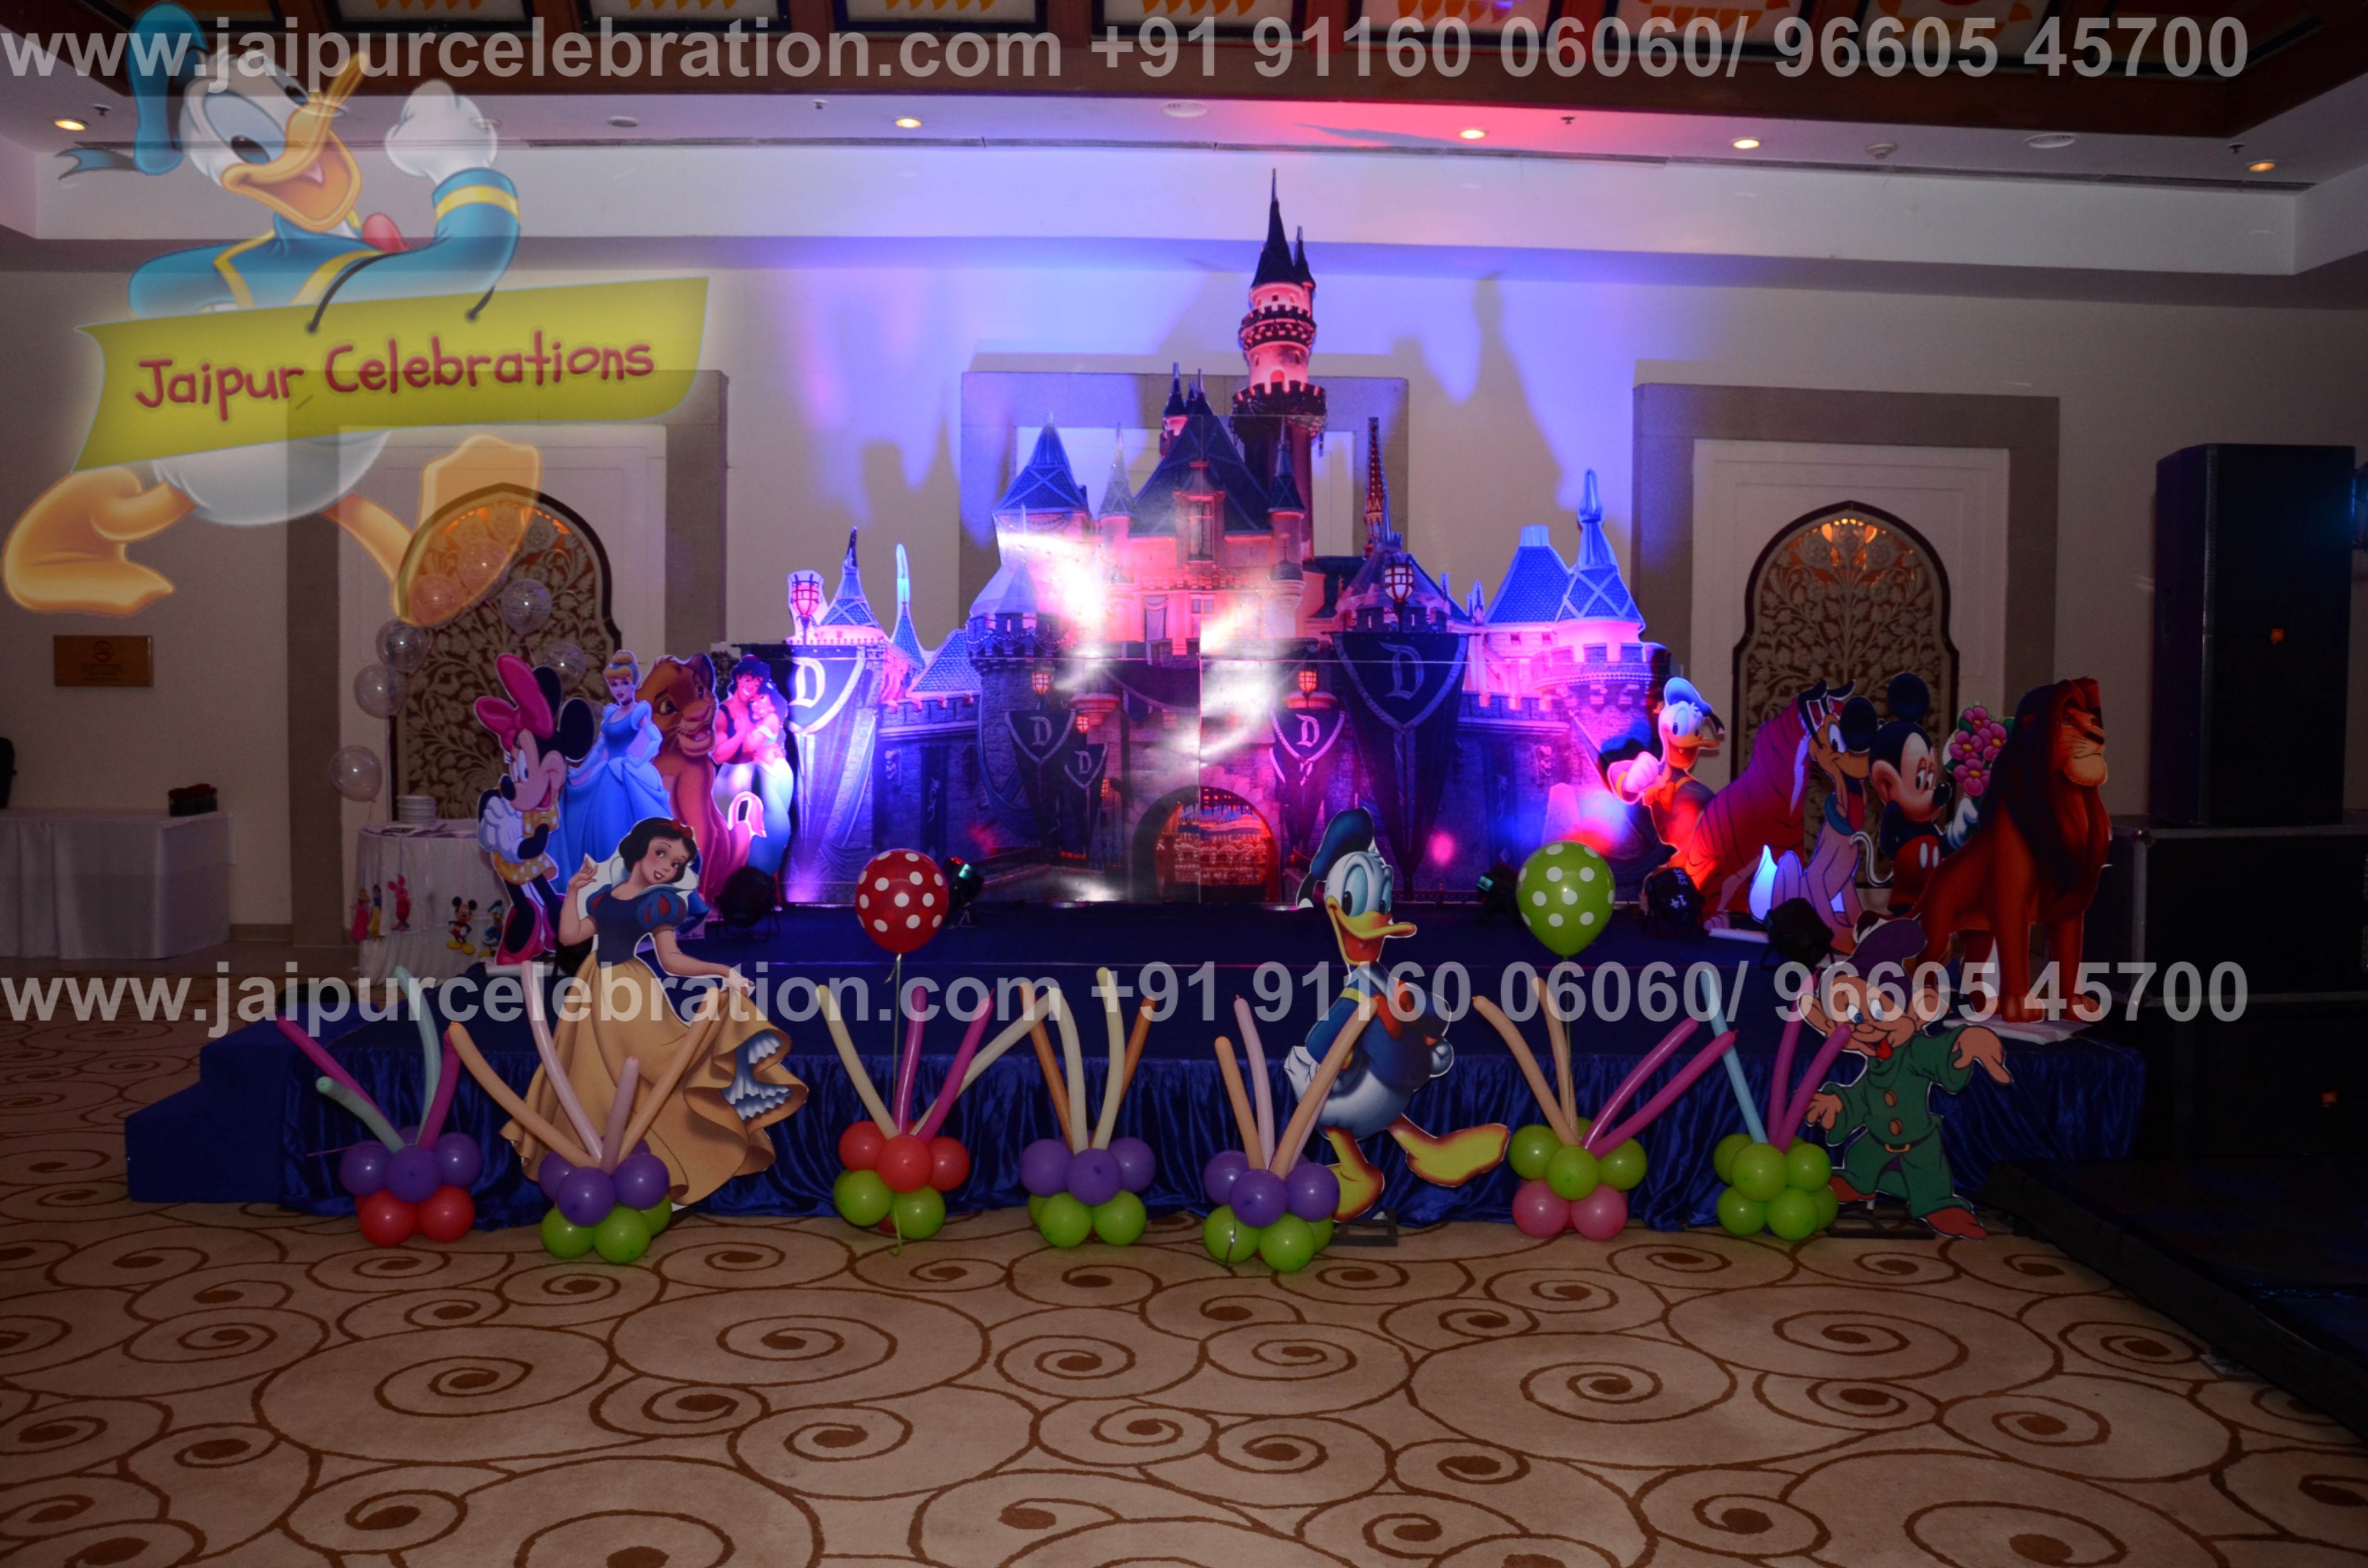 theme party organiger in jaipur